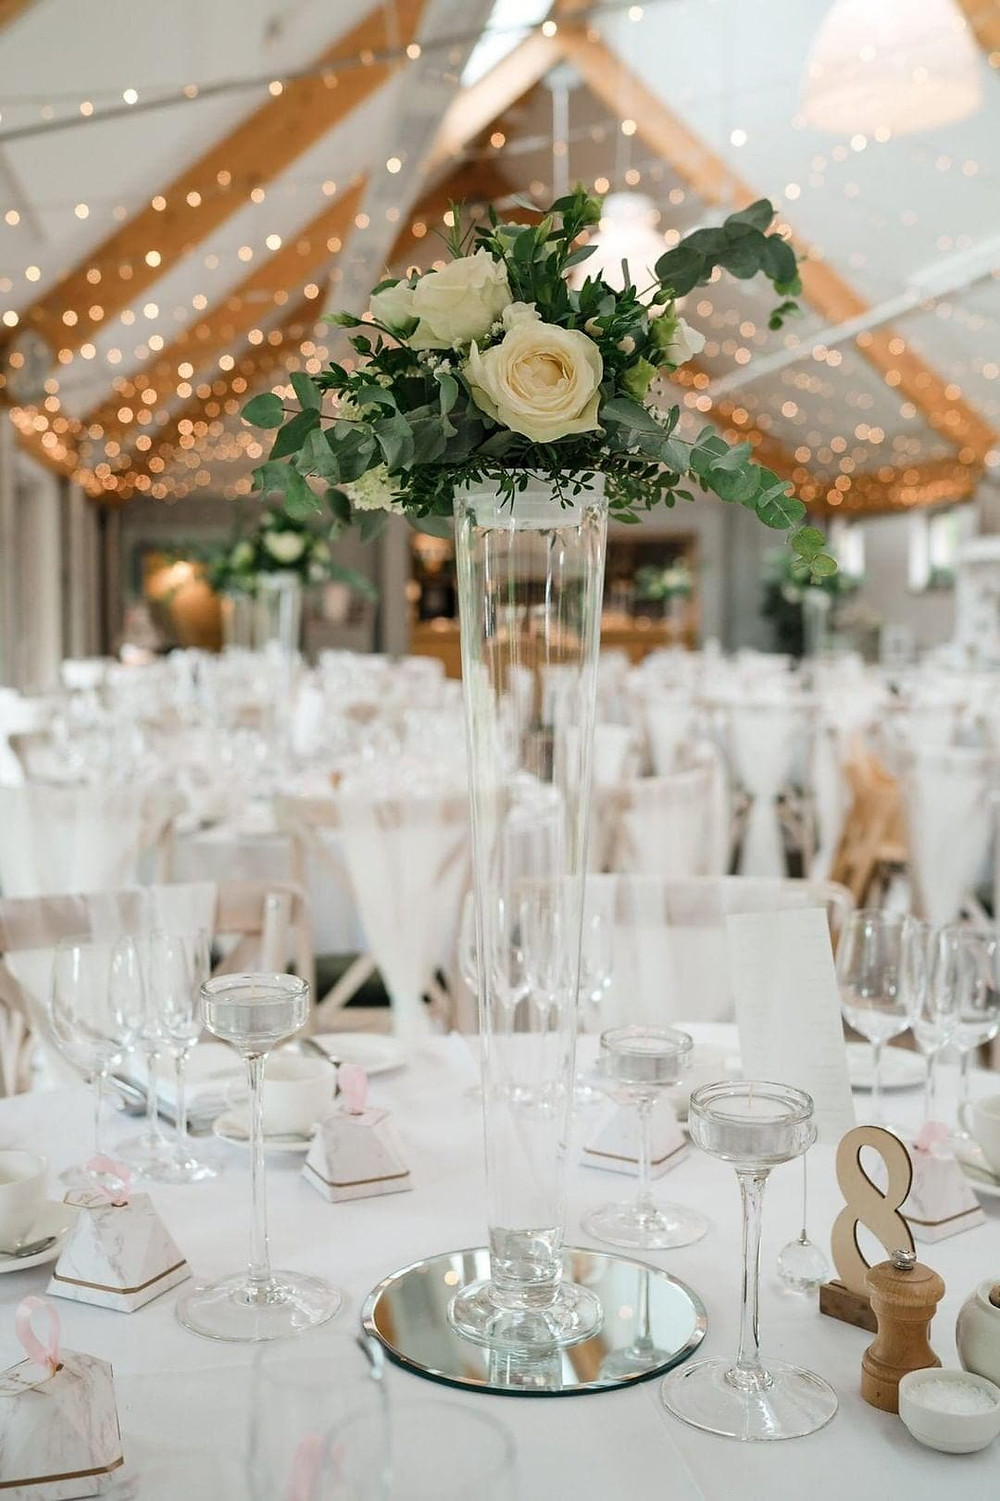 Floral centrepieces designed in glass vases for this wedding